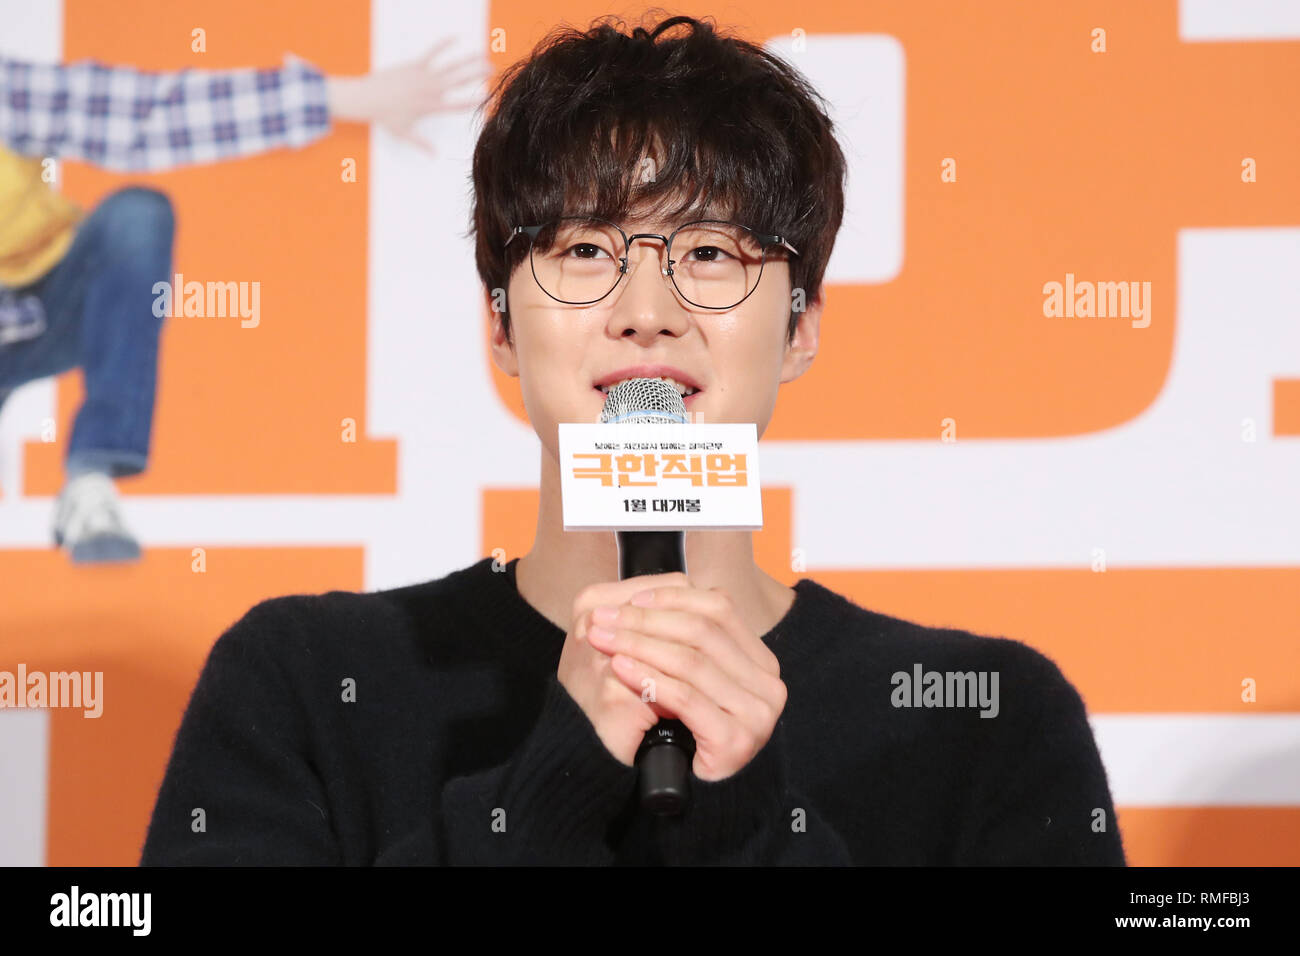 15th Feb, 2019  Box office hit 'Extreme Job' S  Korean actor